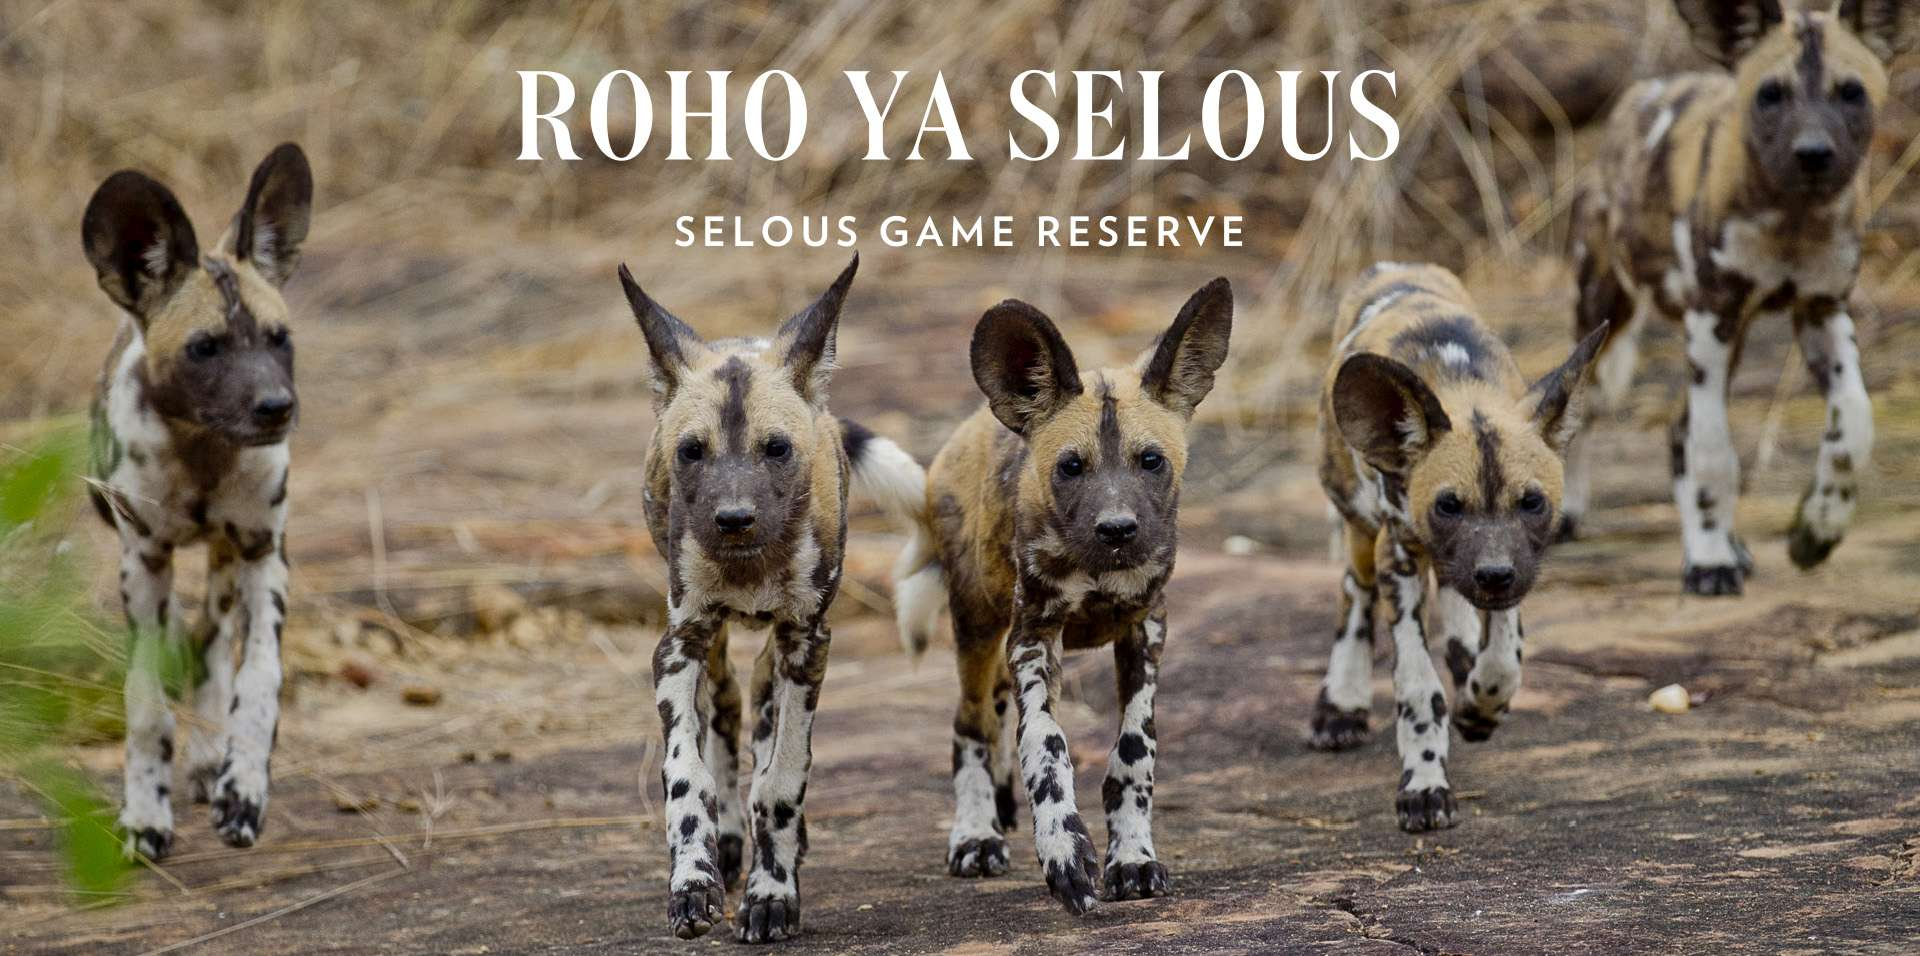 Come and join us in the heart of Selous at Roho ya Selous